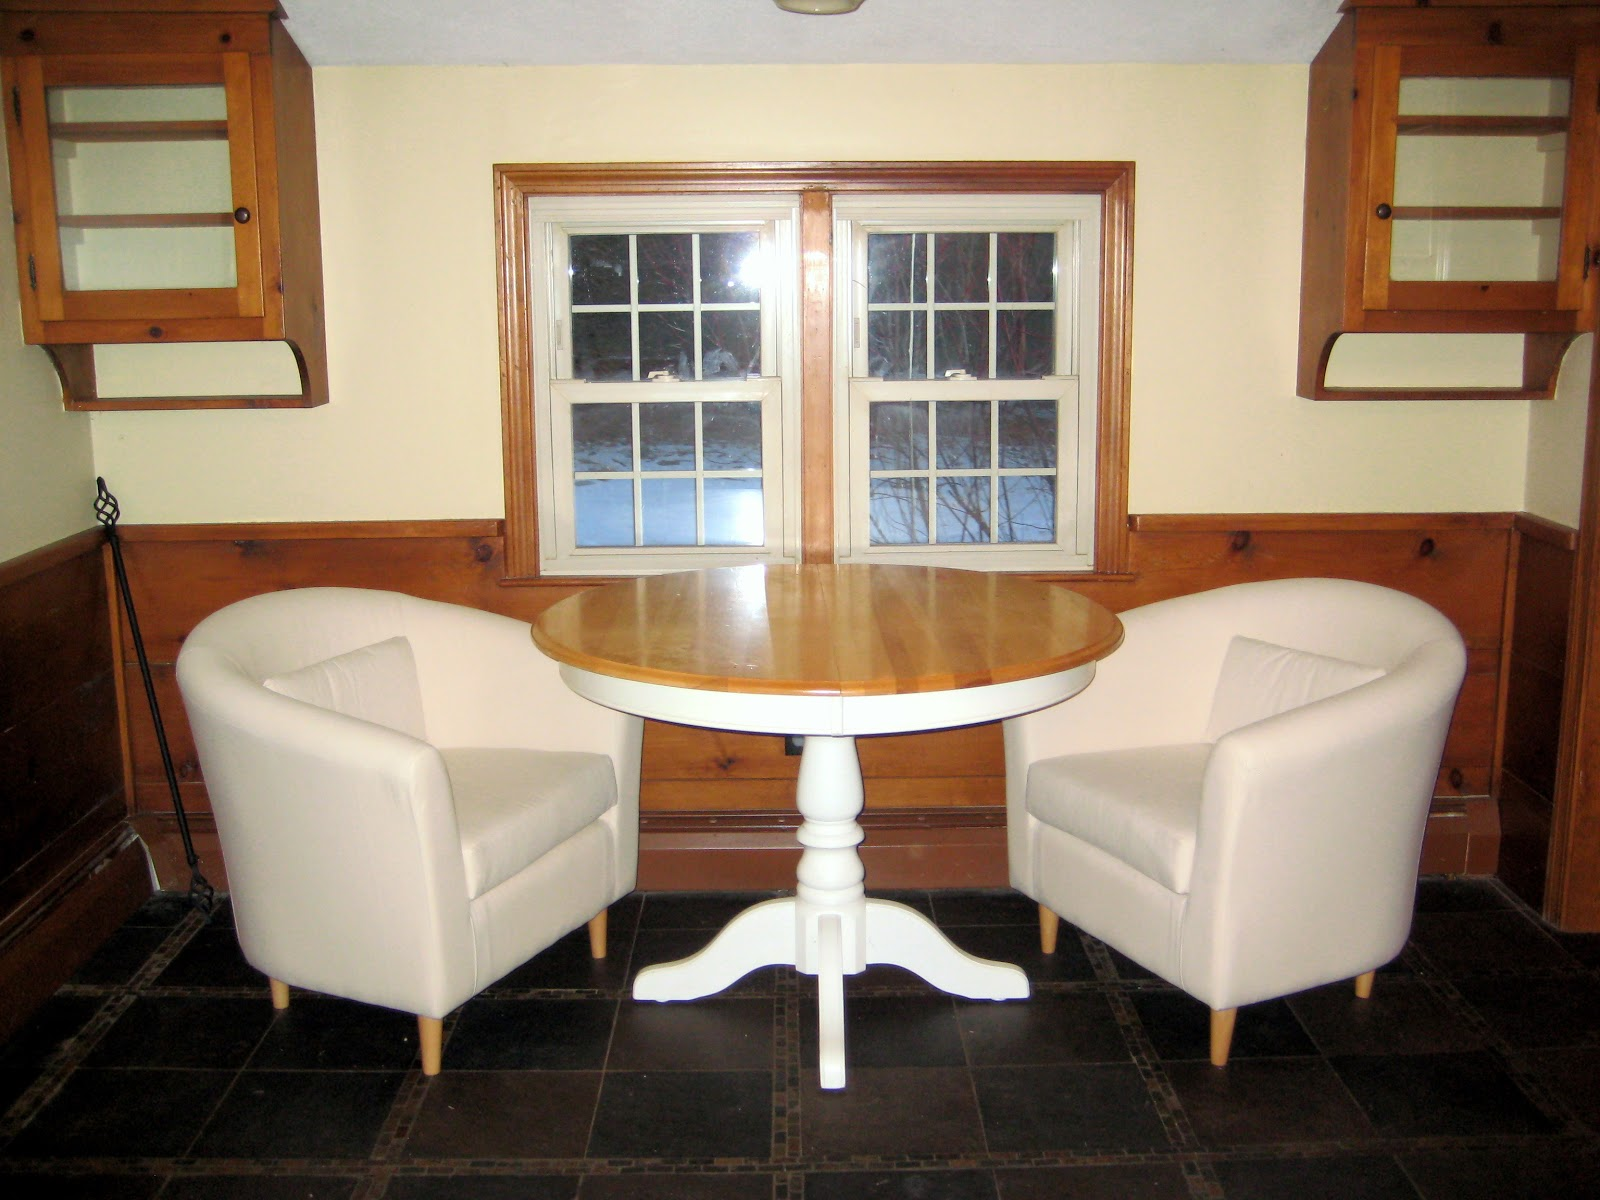 Happily Barefoot Craigslist Dining Set Do Over X 2